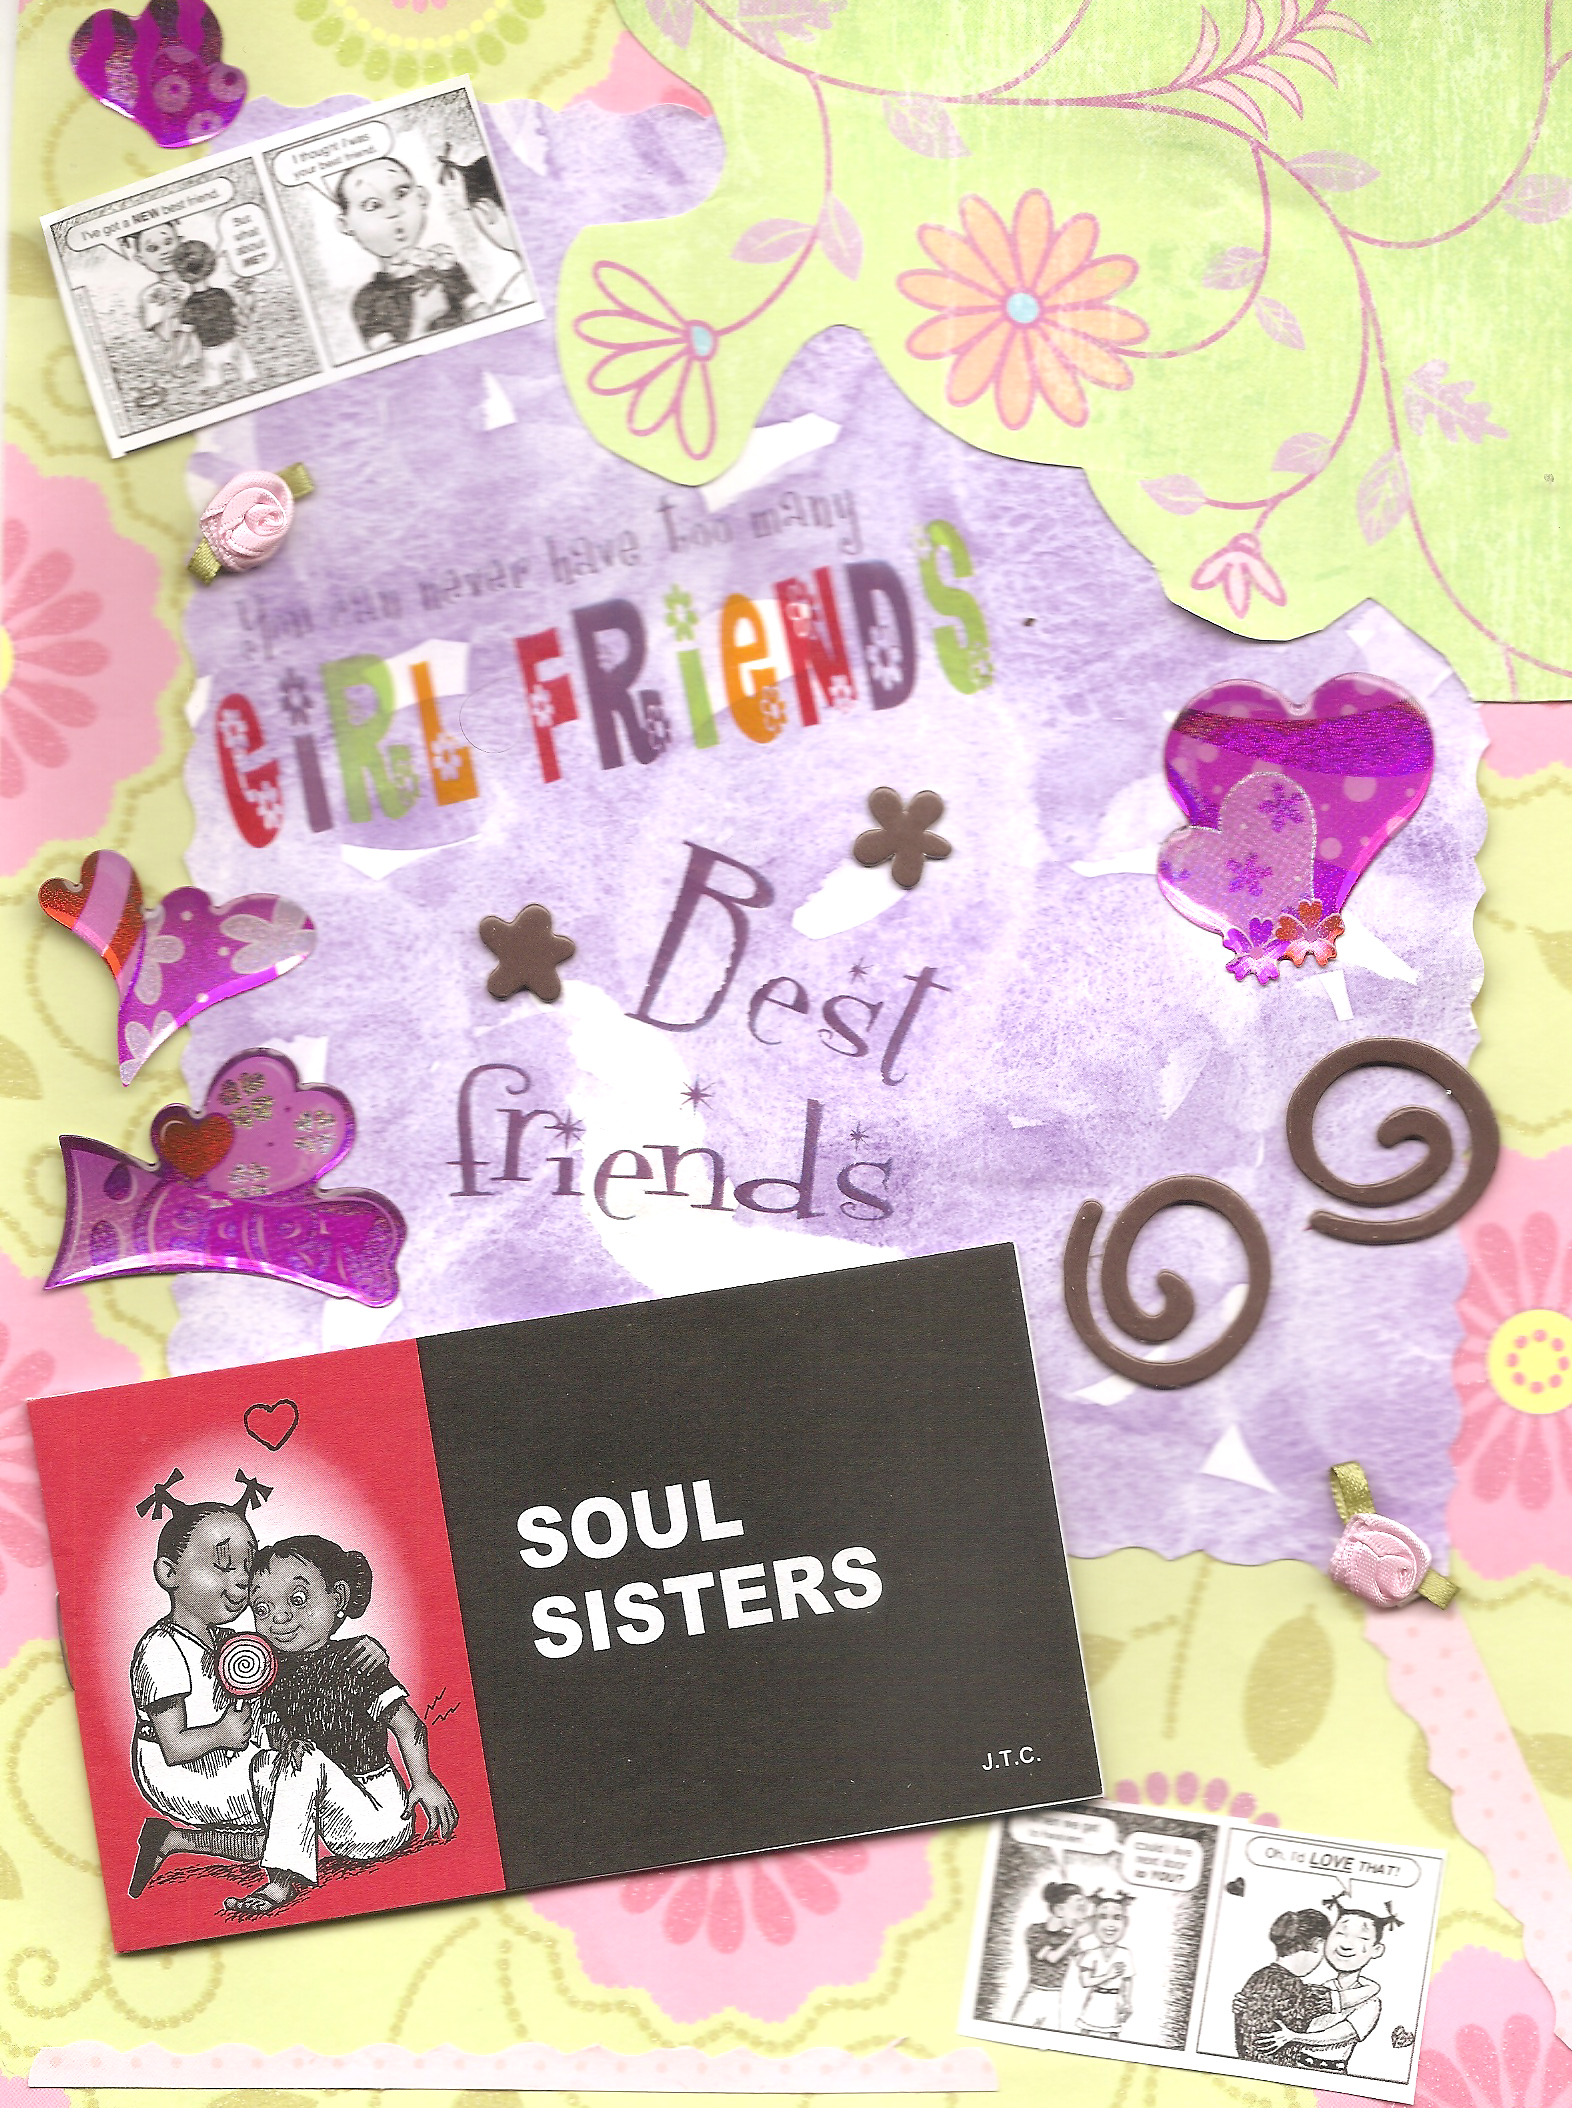 Scrapbook ideas for best friend - A Scrapbook Page Displaying The Chick Tract Soul Sisters Against A Green Floral